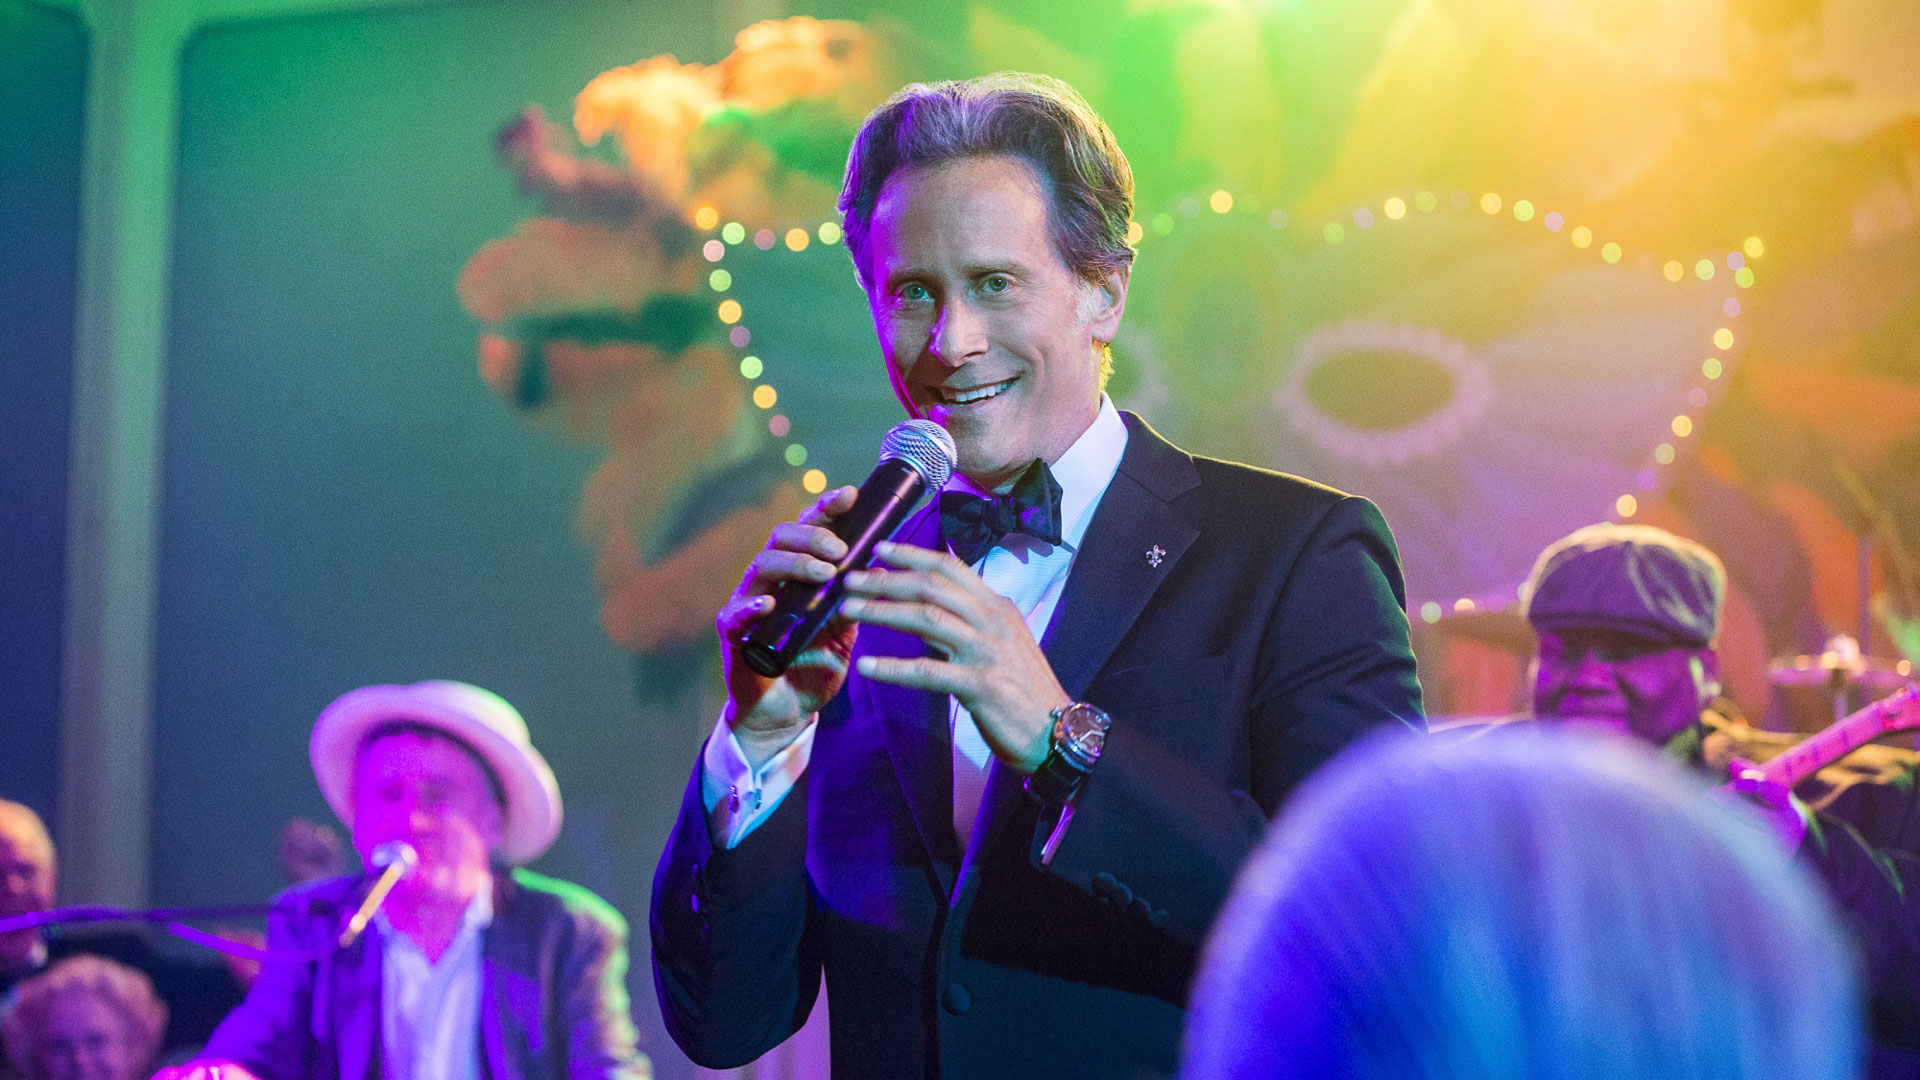 Steven Weber as Mayor Douglas Hamilton